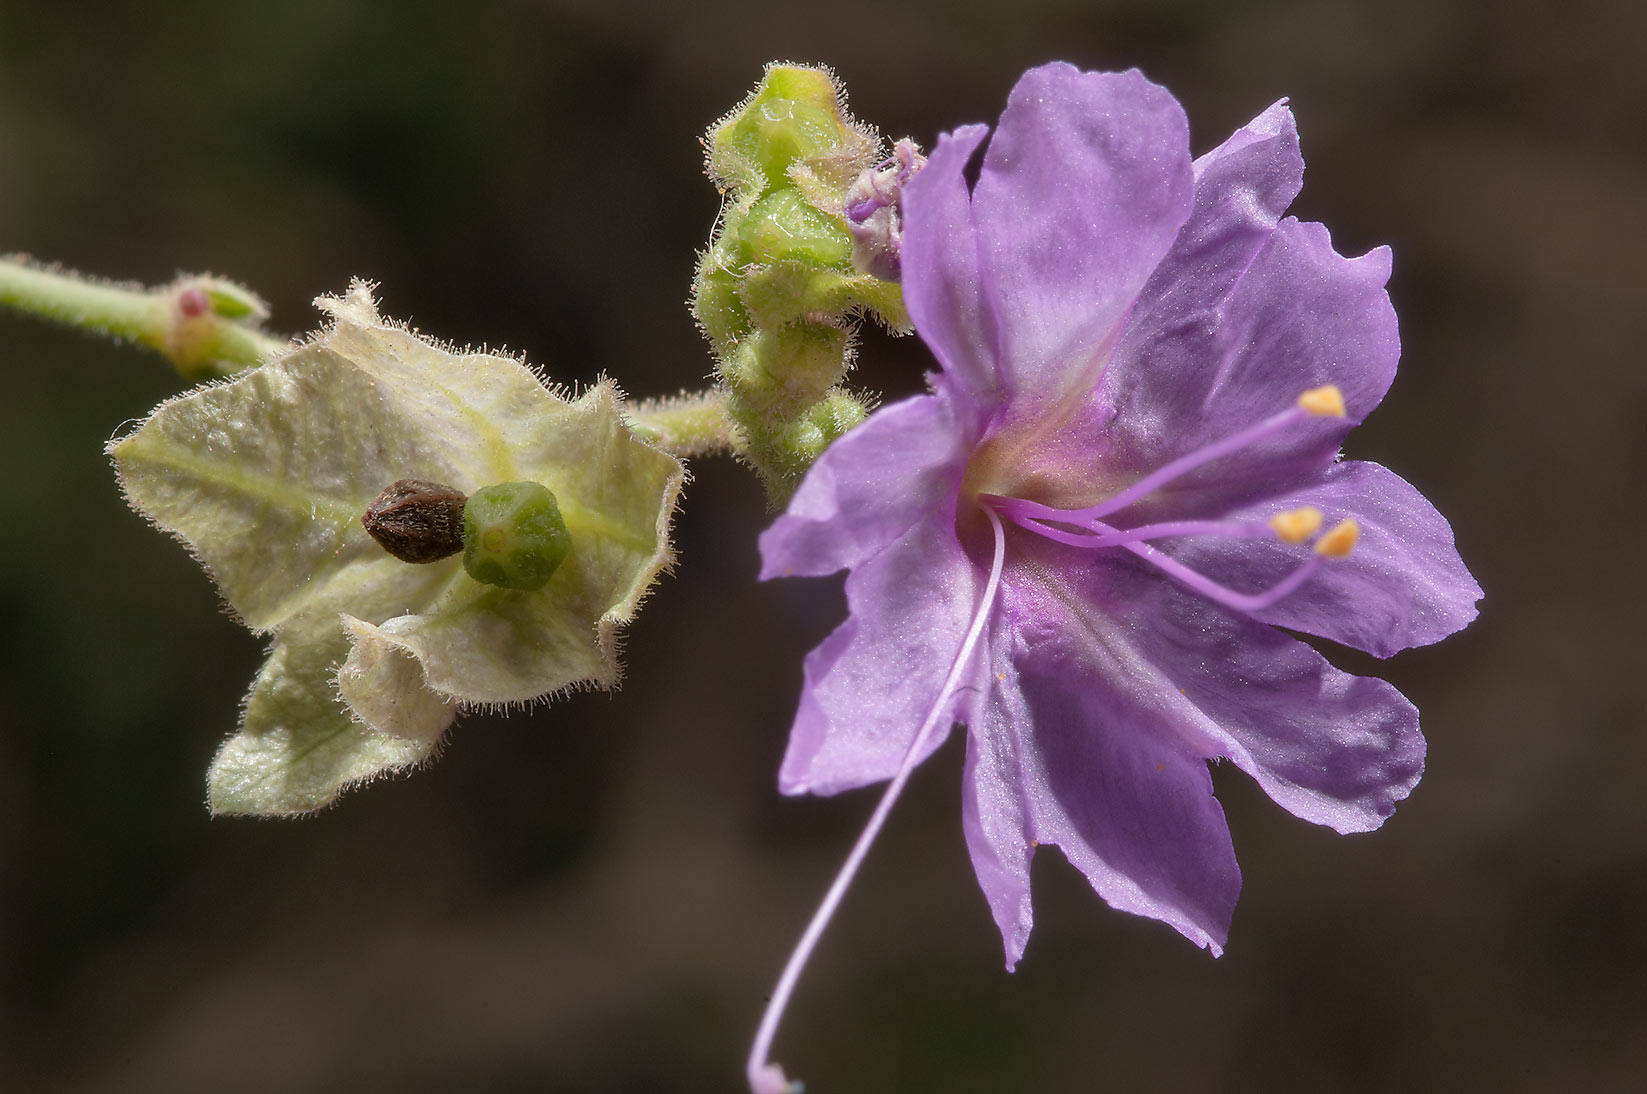 Mirabilis (Four-O'clock family) on roadside of Rd...near Sugarloaf Mountain. Gause, Texas